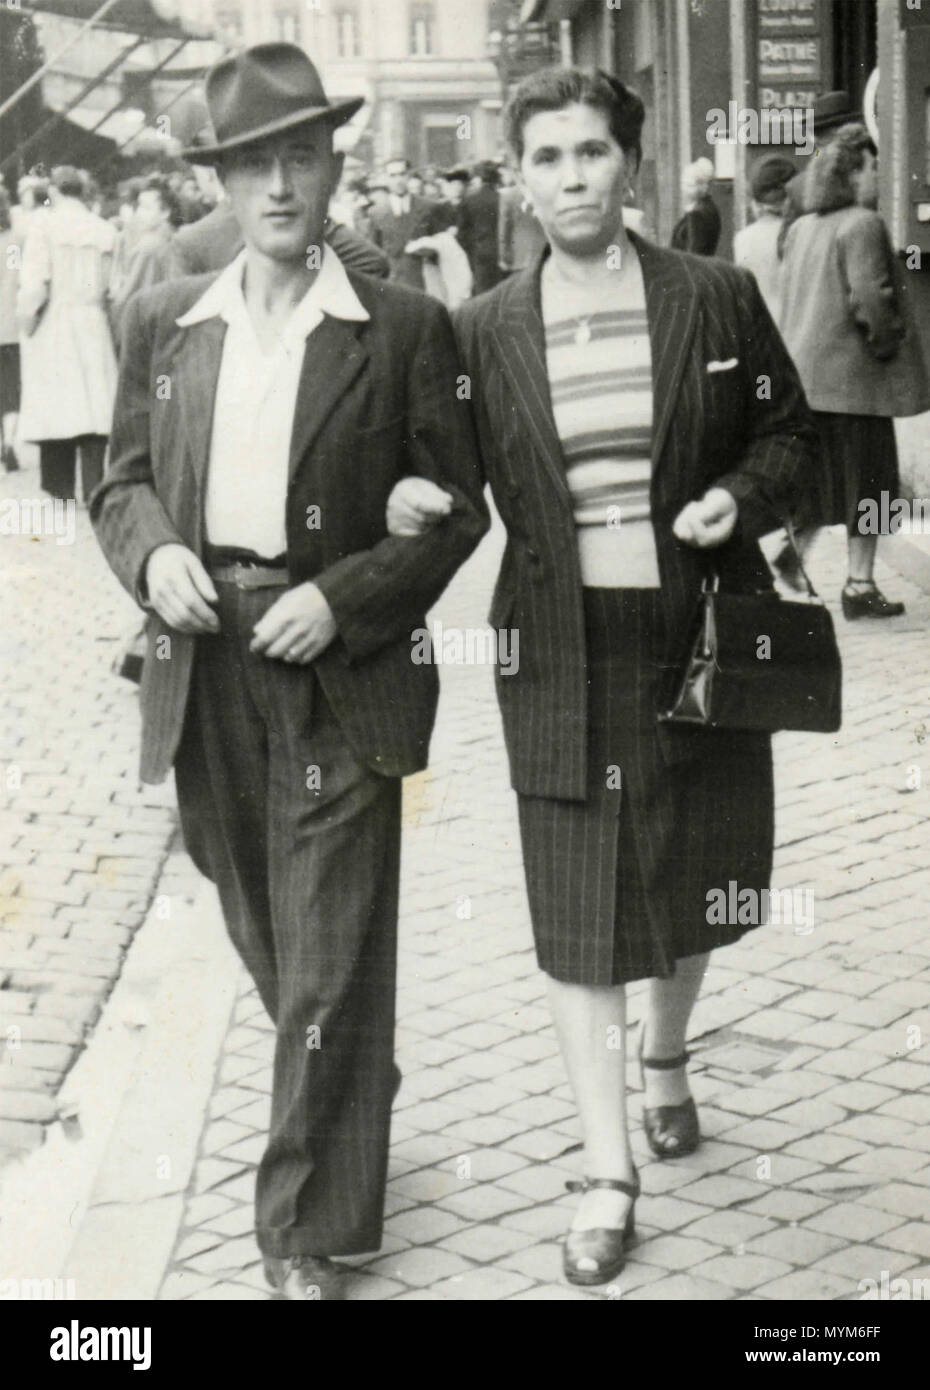 Couple walking in the streets, Italy 1940s Stock Photo